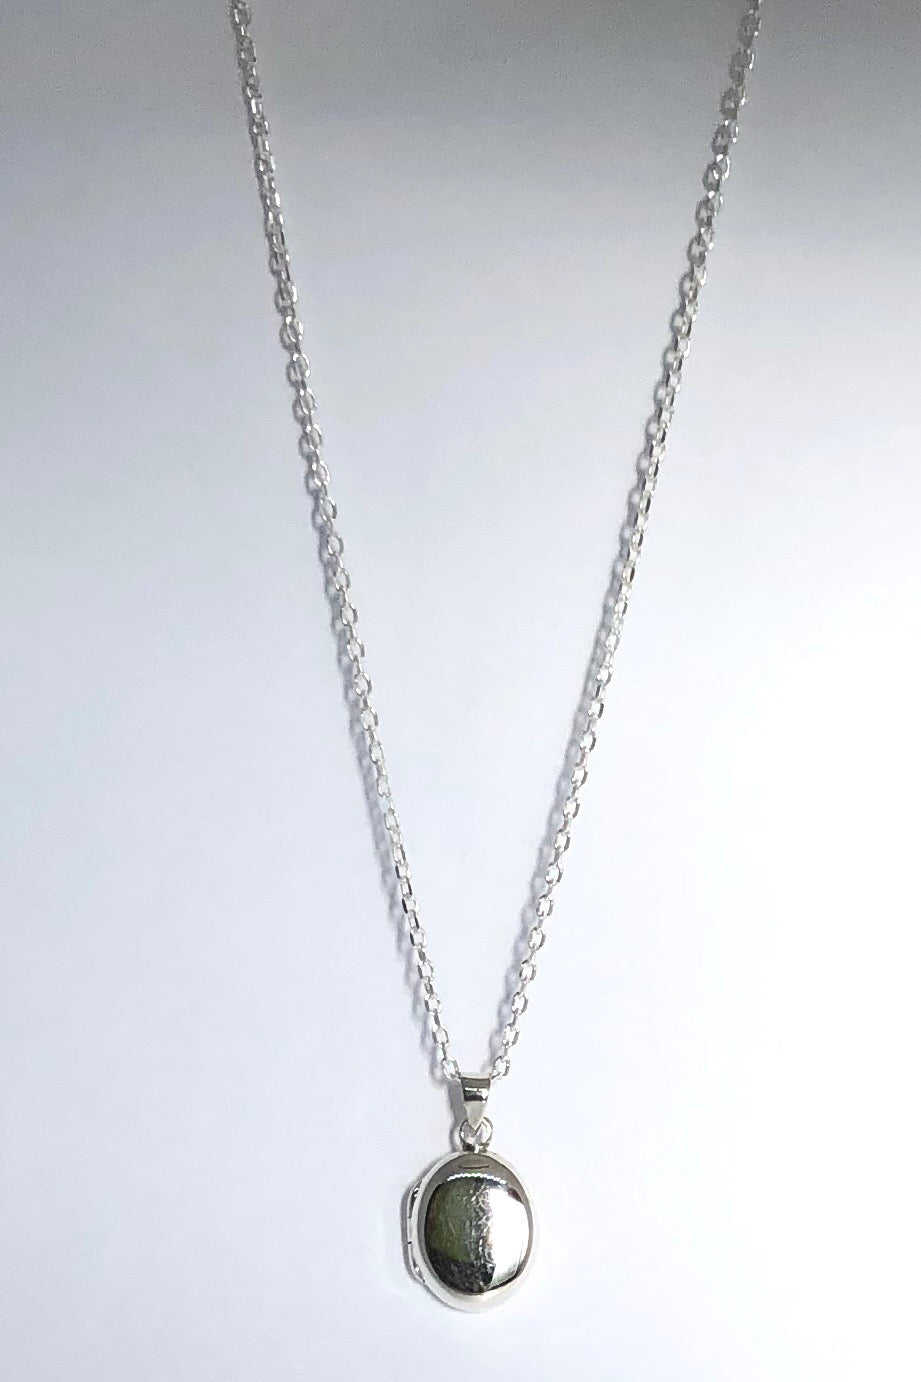 Openable locket Oval shape pendant features 925 solid silver, 1.5cm long, and comes on a 925 silver chain.